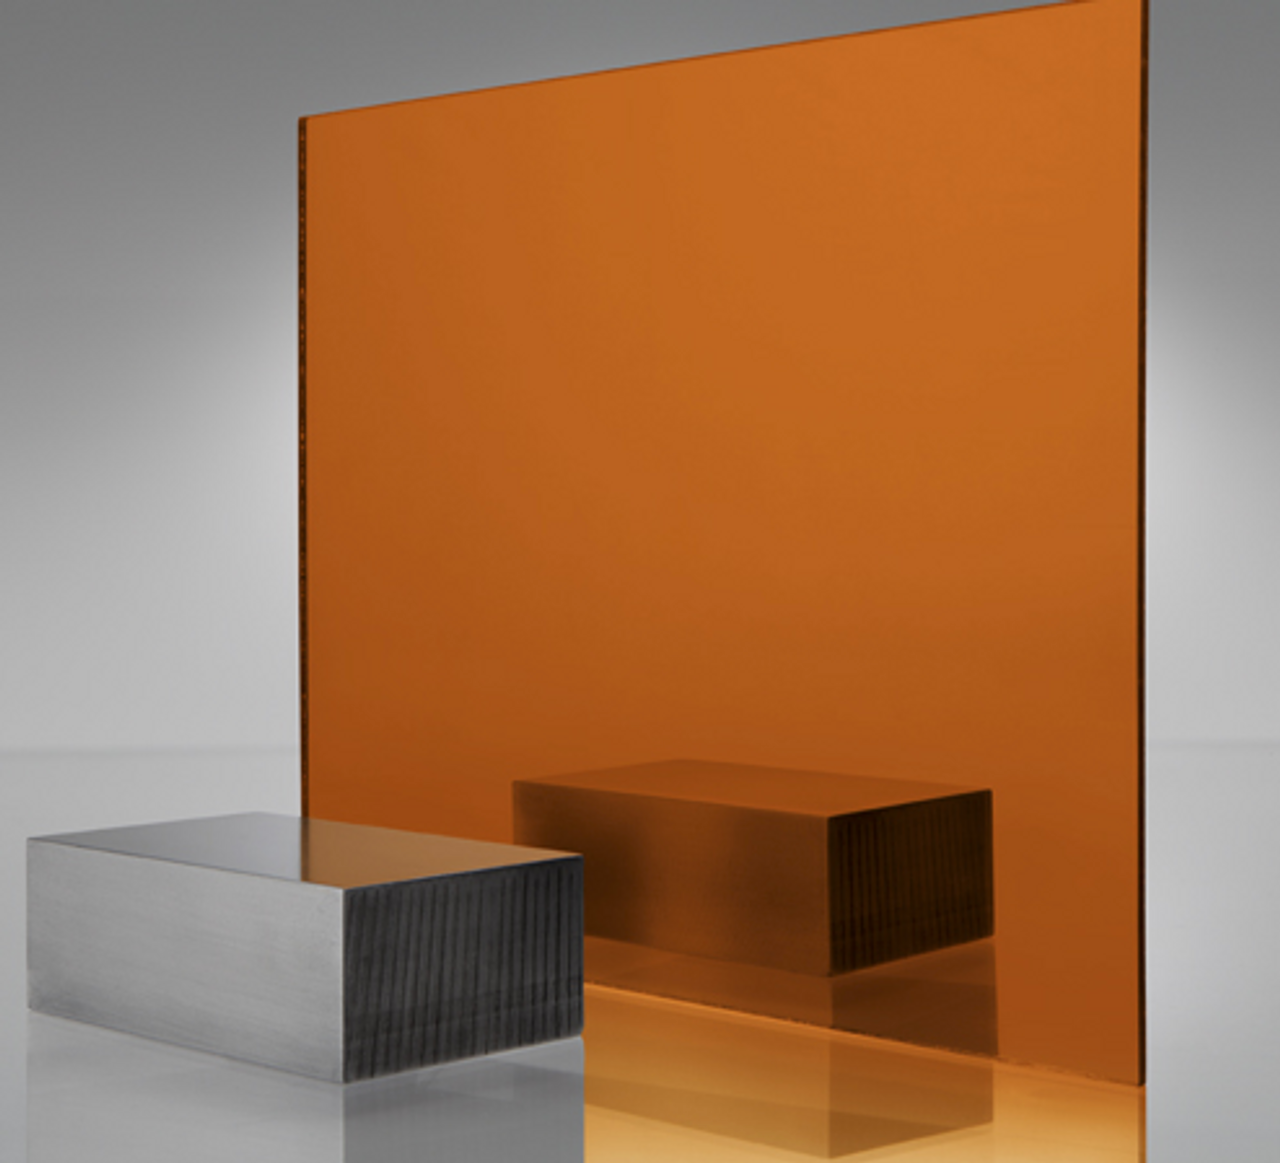 4x8' Mirrored Acrylic ORANGE